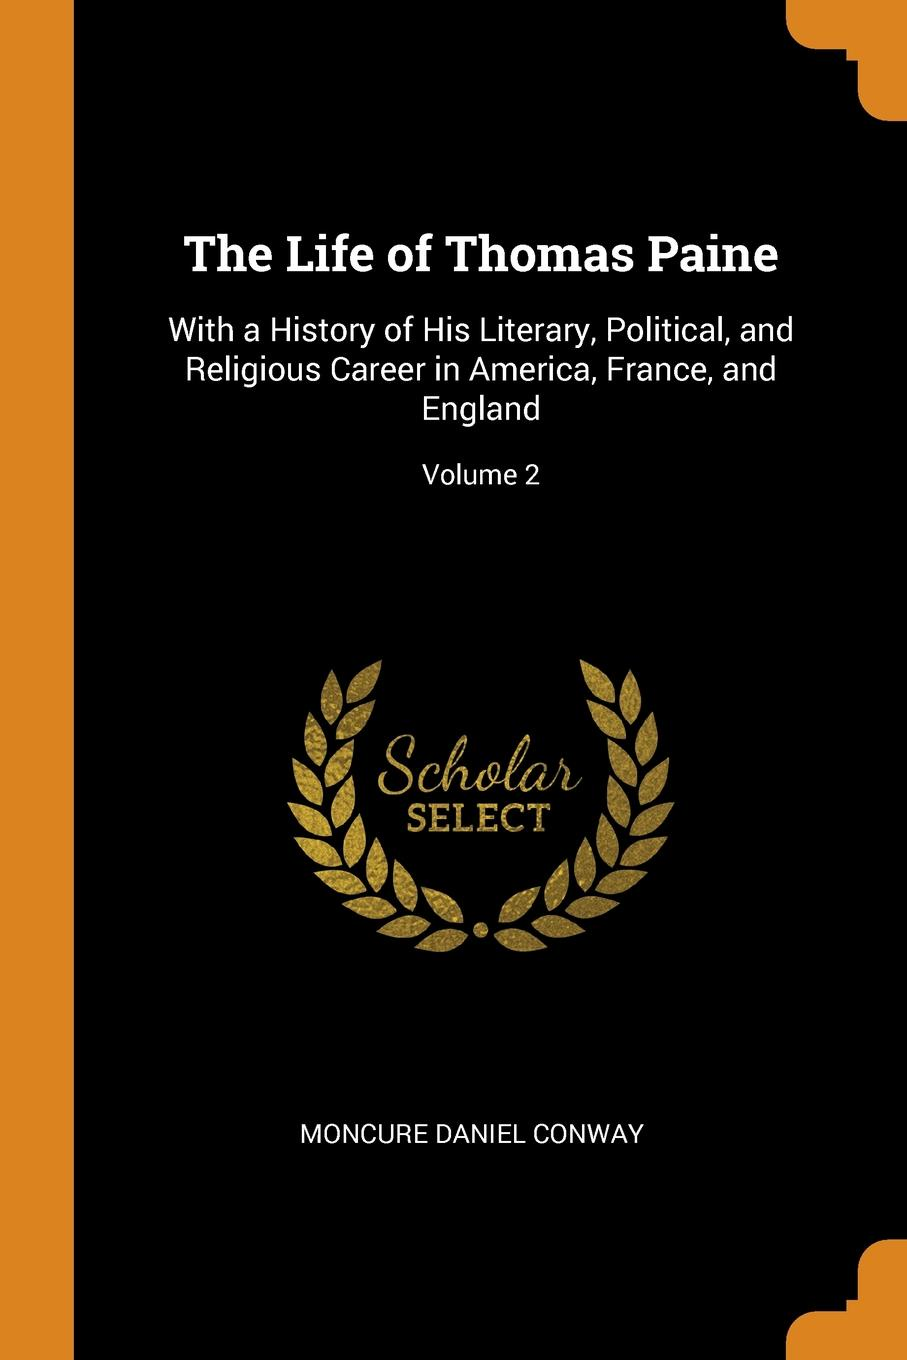 The Life of Thomas Paine. With a History of His Literary, Political, and Religious Career in America, France, and England; Volume 2 This work has been selected by scholars as being culturally important...